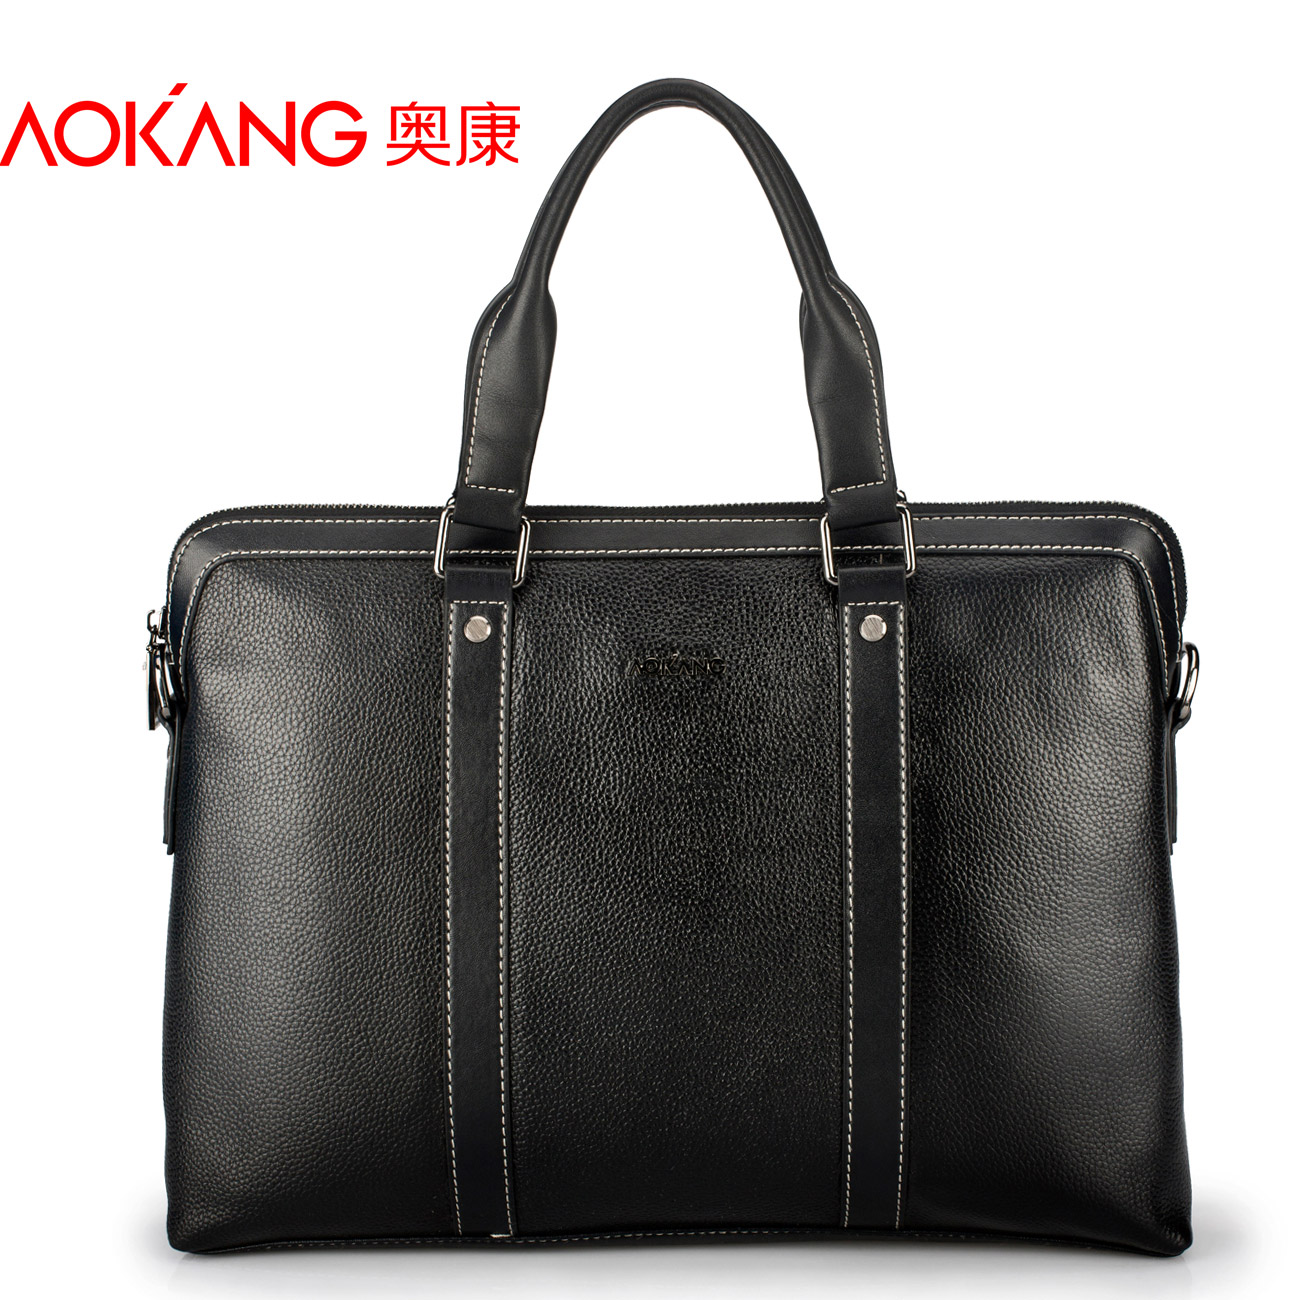 Aokang leather fine man bag male casual genuine leather handbag cross-body shoulder bag first layer of cowhide briefcase bag hot selling crazy horse leather man bag vintage casual first layer of cowhide handbag one shoulder cross body computer bag 0201